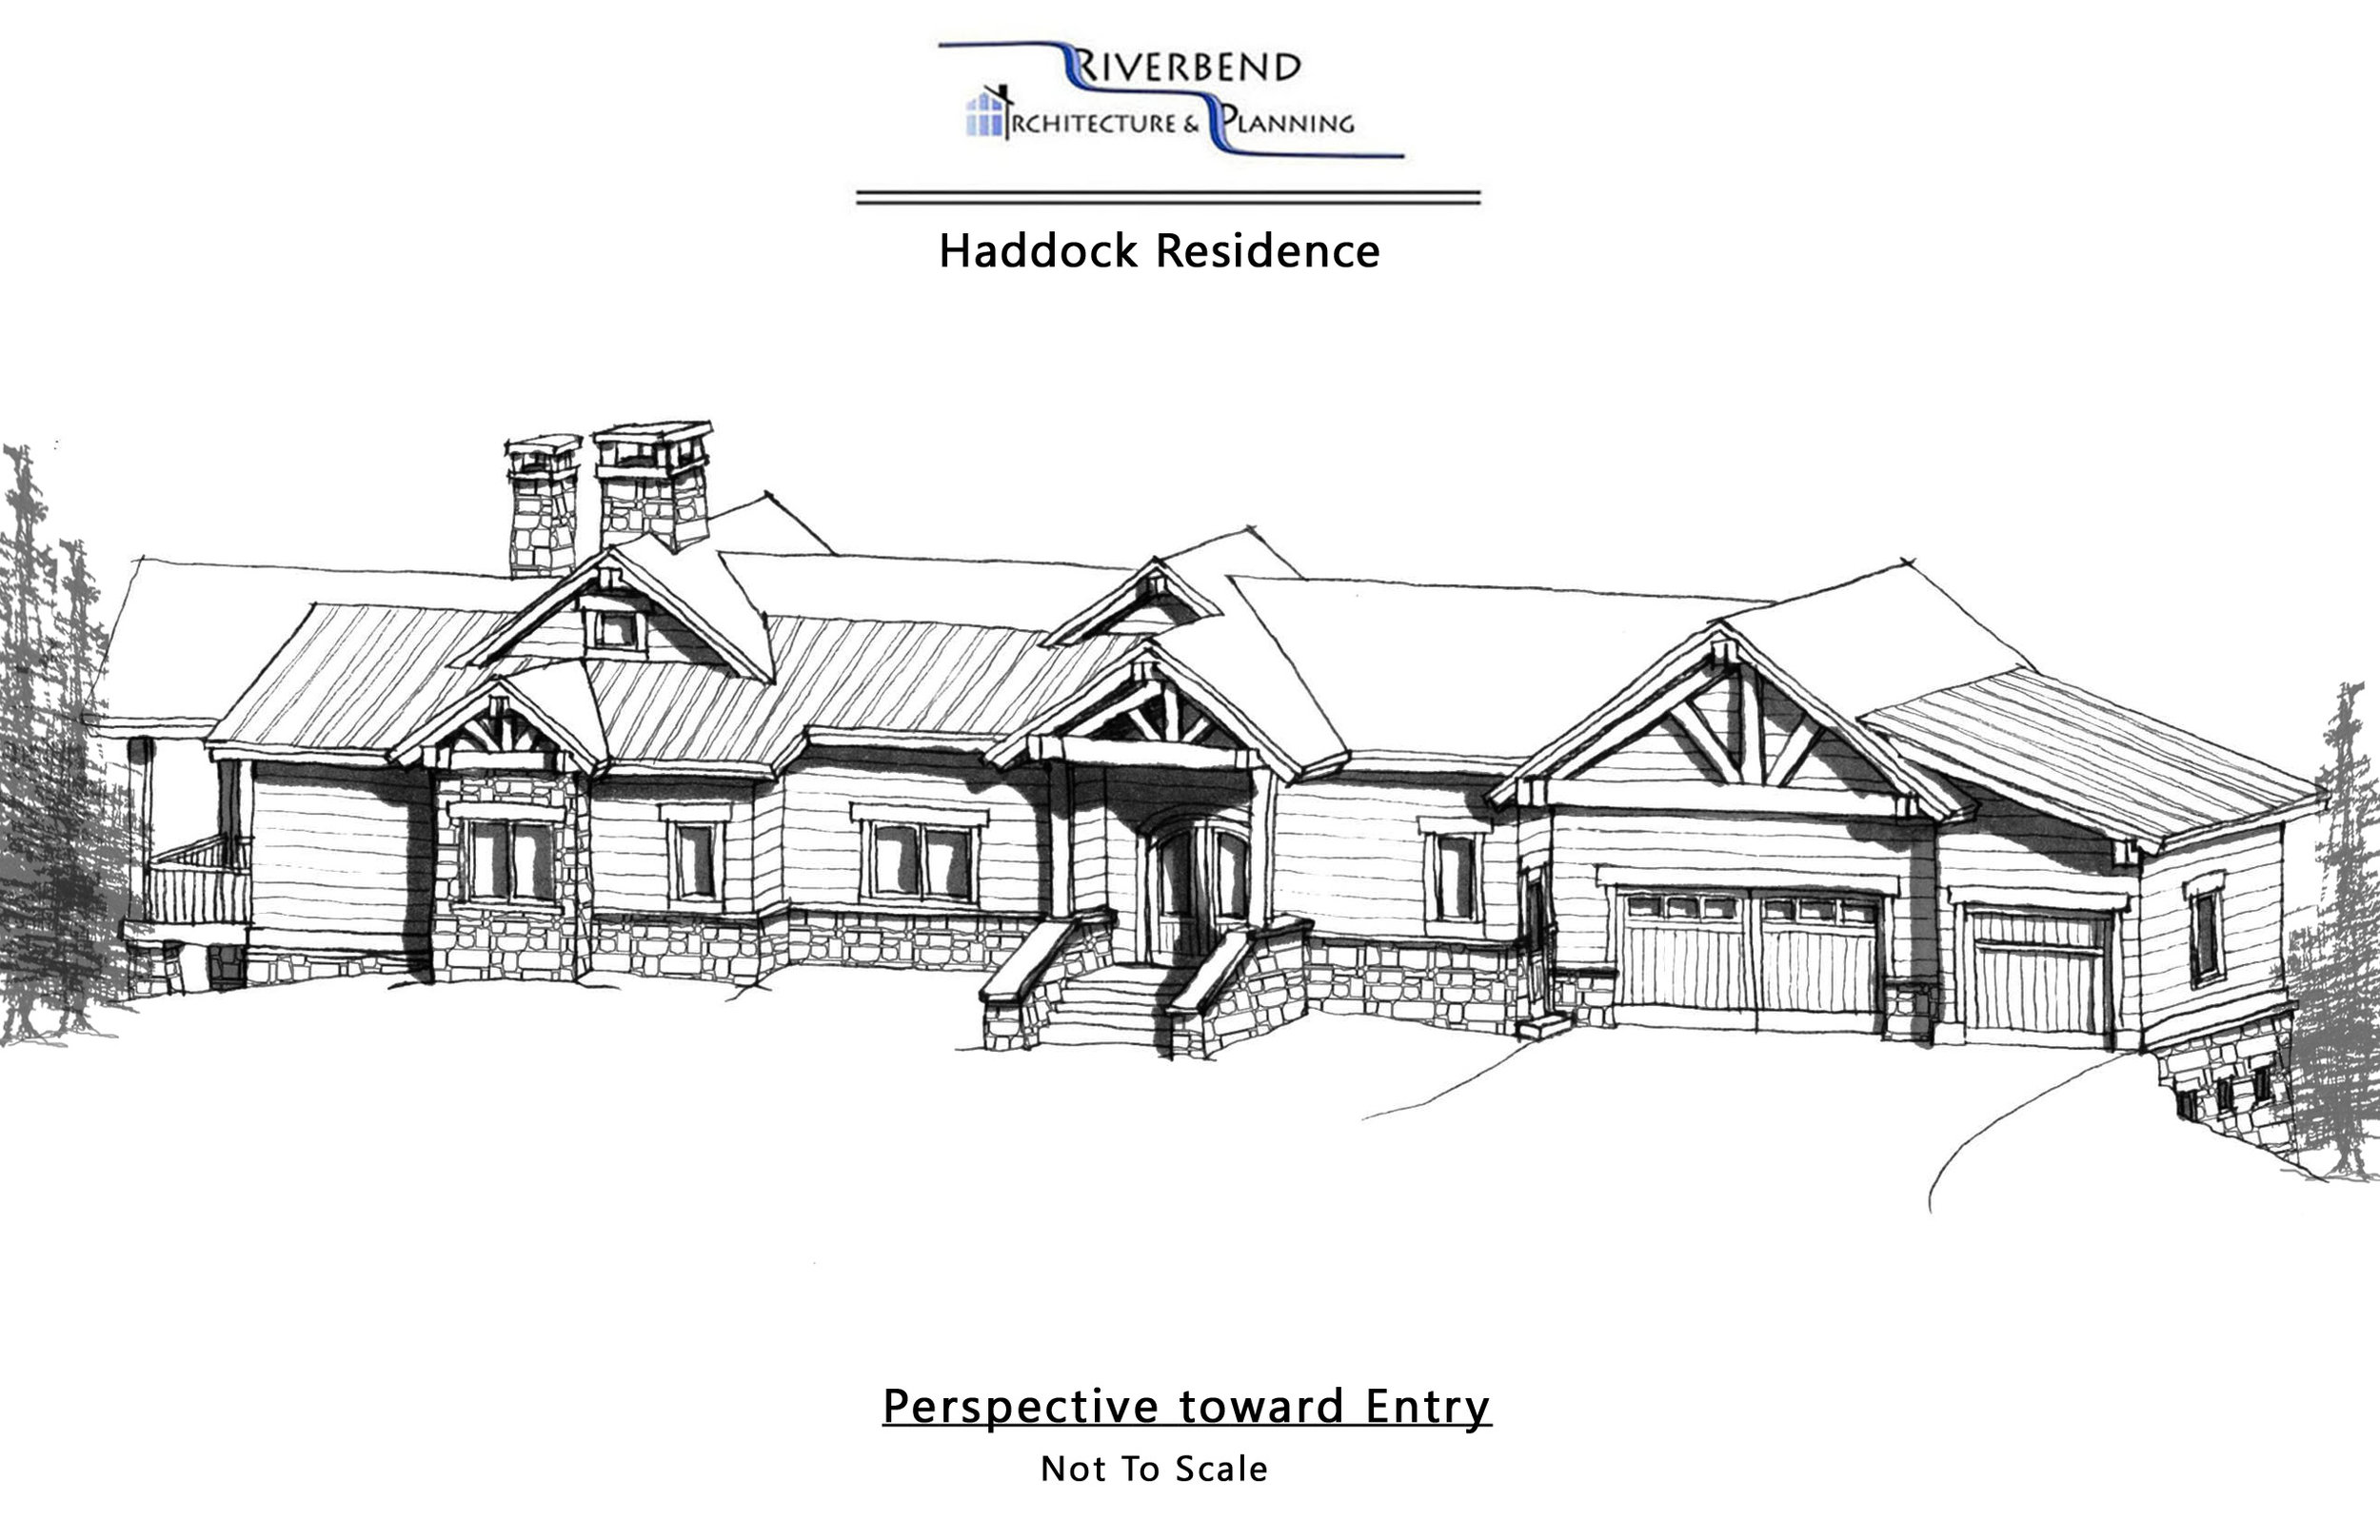 Haddock_Conceptual Review_12126_Page_4.jpg